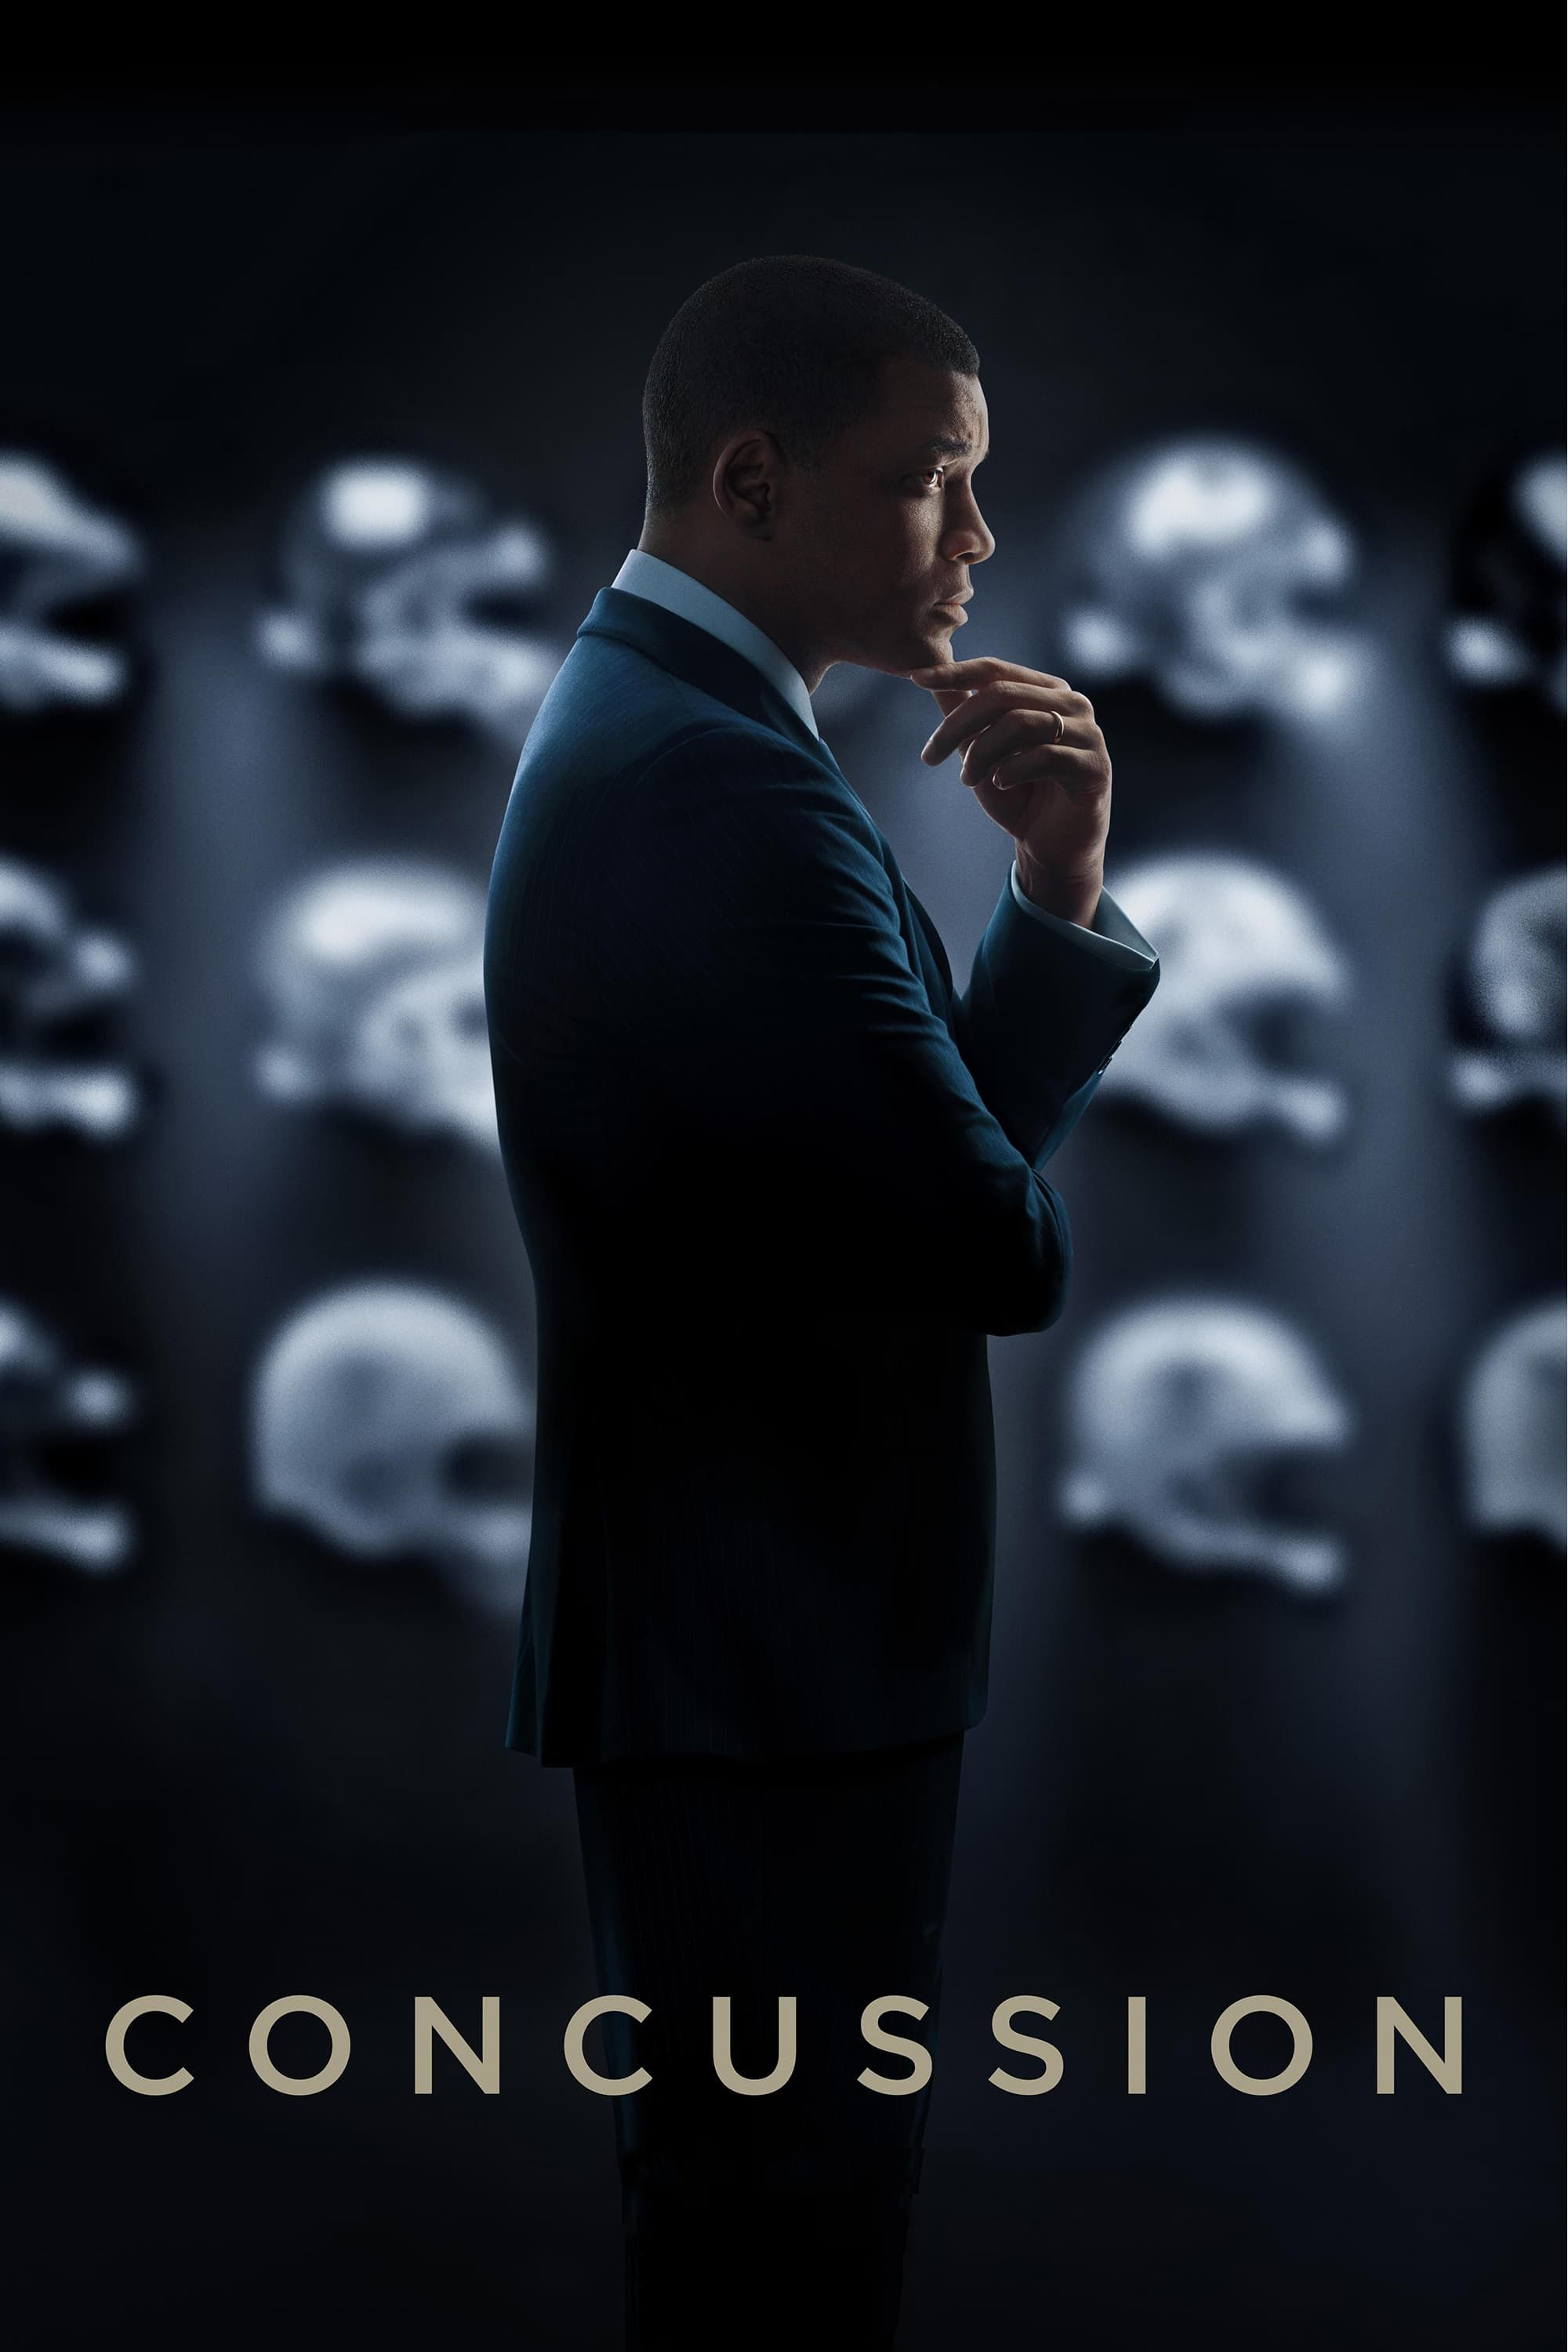 Concussion movie poster poster bestposter fullhd